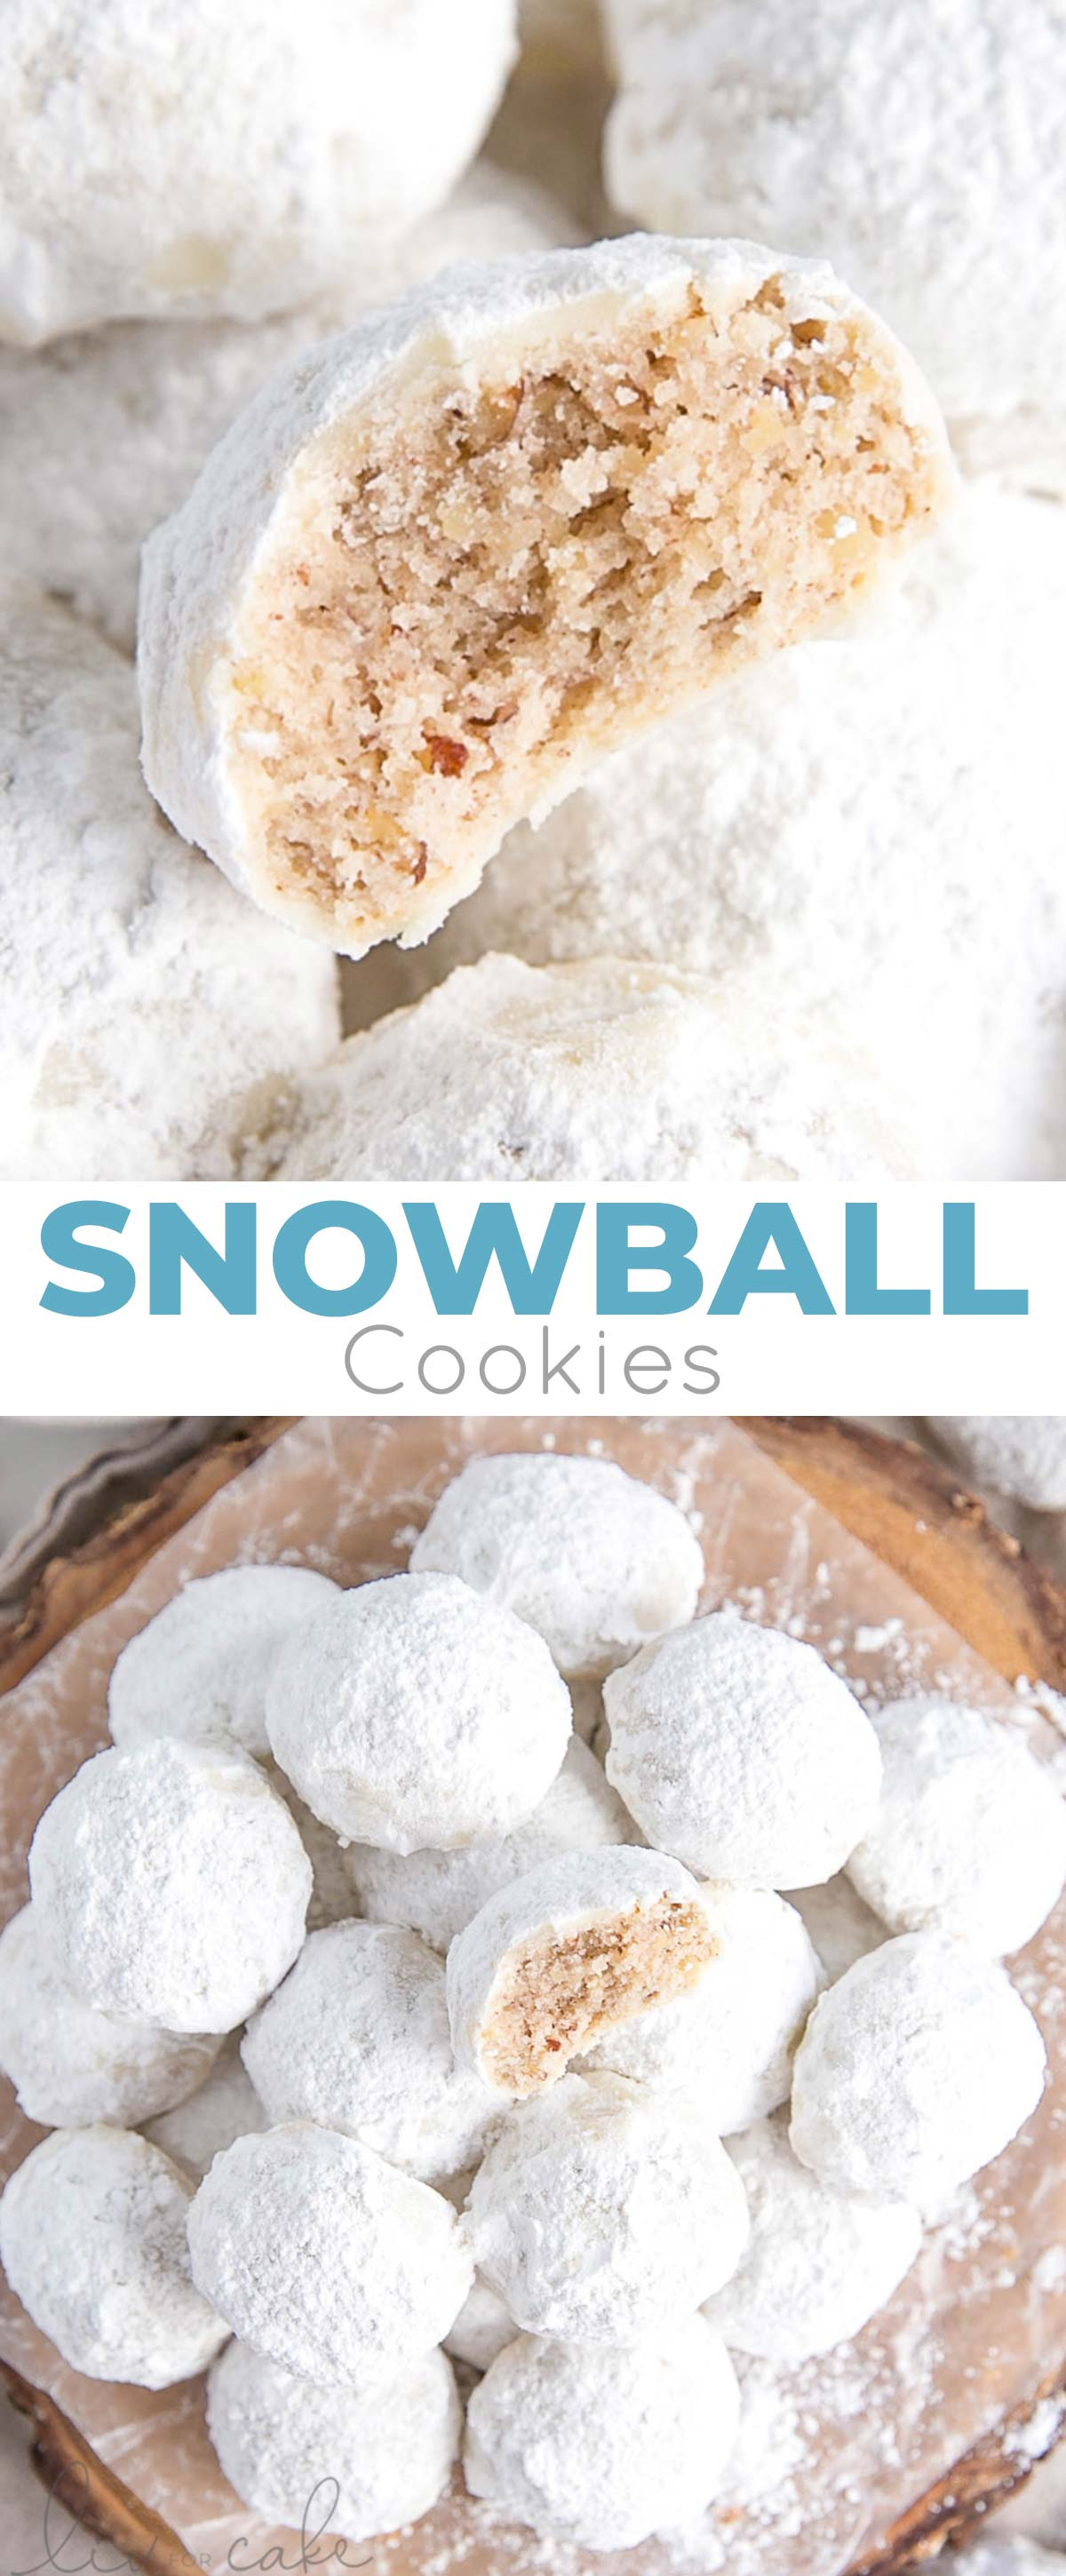 Collage photo of Snowball Cookies